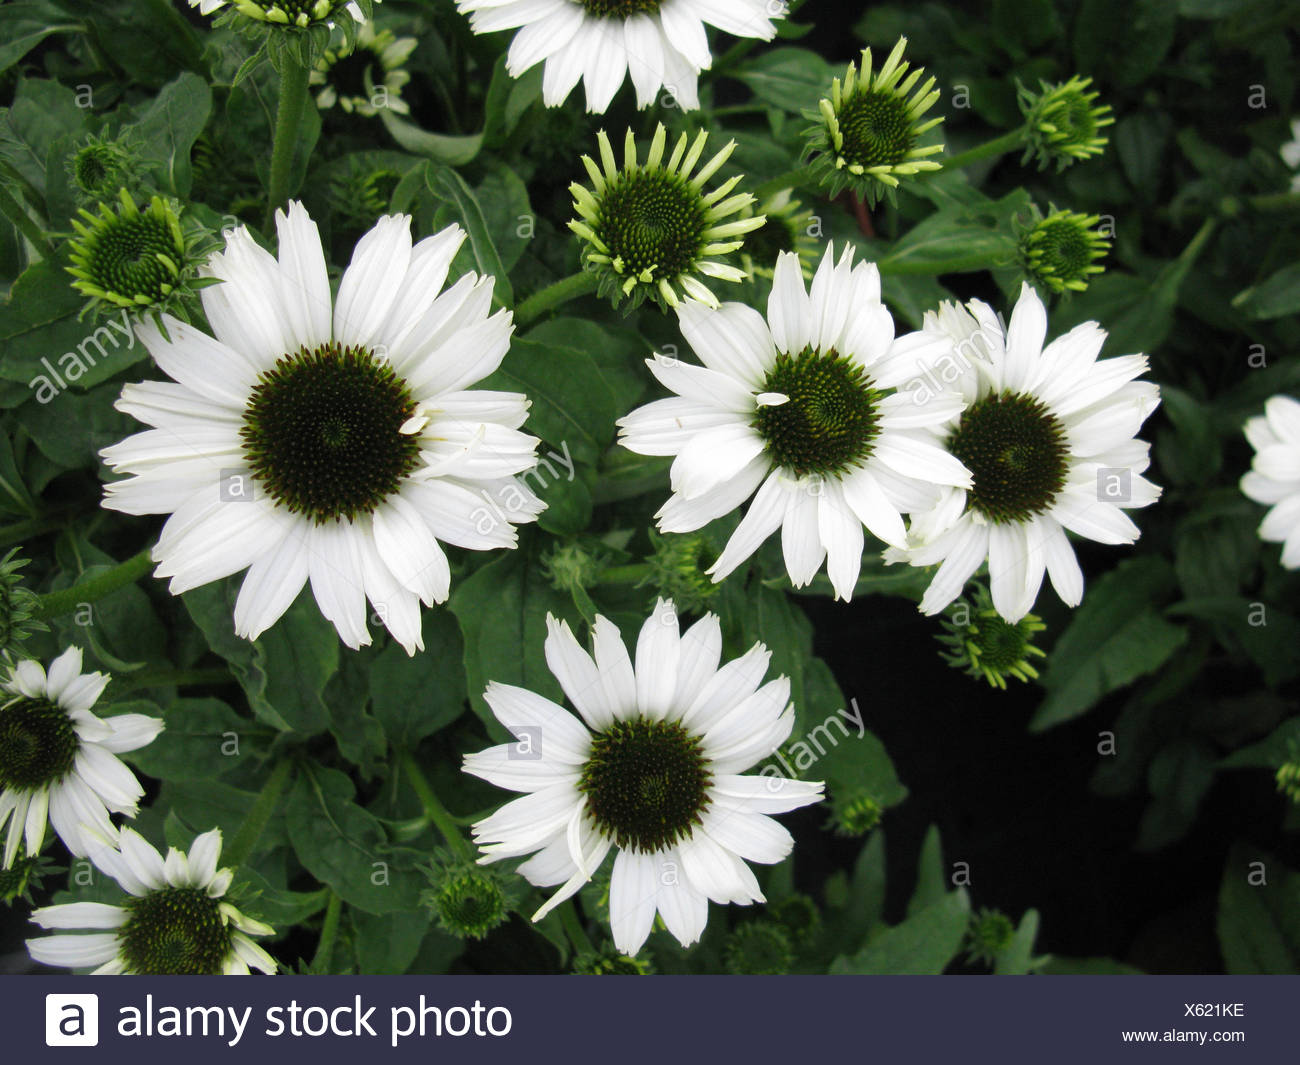 Purple Cone Flower, Eastern purple-coneflower, Echinacea purpurea Pow Wow White Rudbeckia purpurea, Brauneria purpurea blooming, cultivar - Stock Image